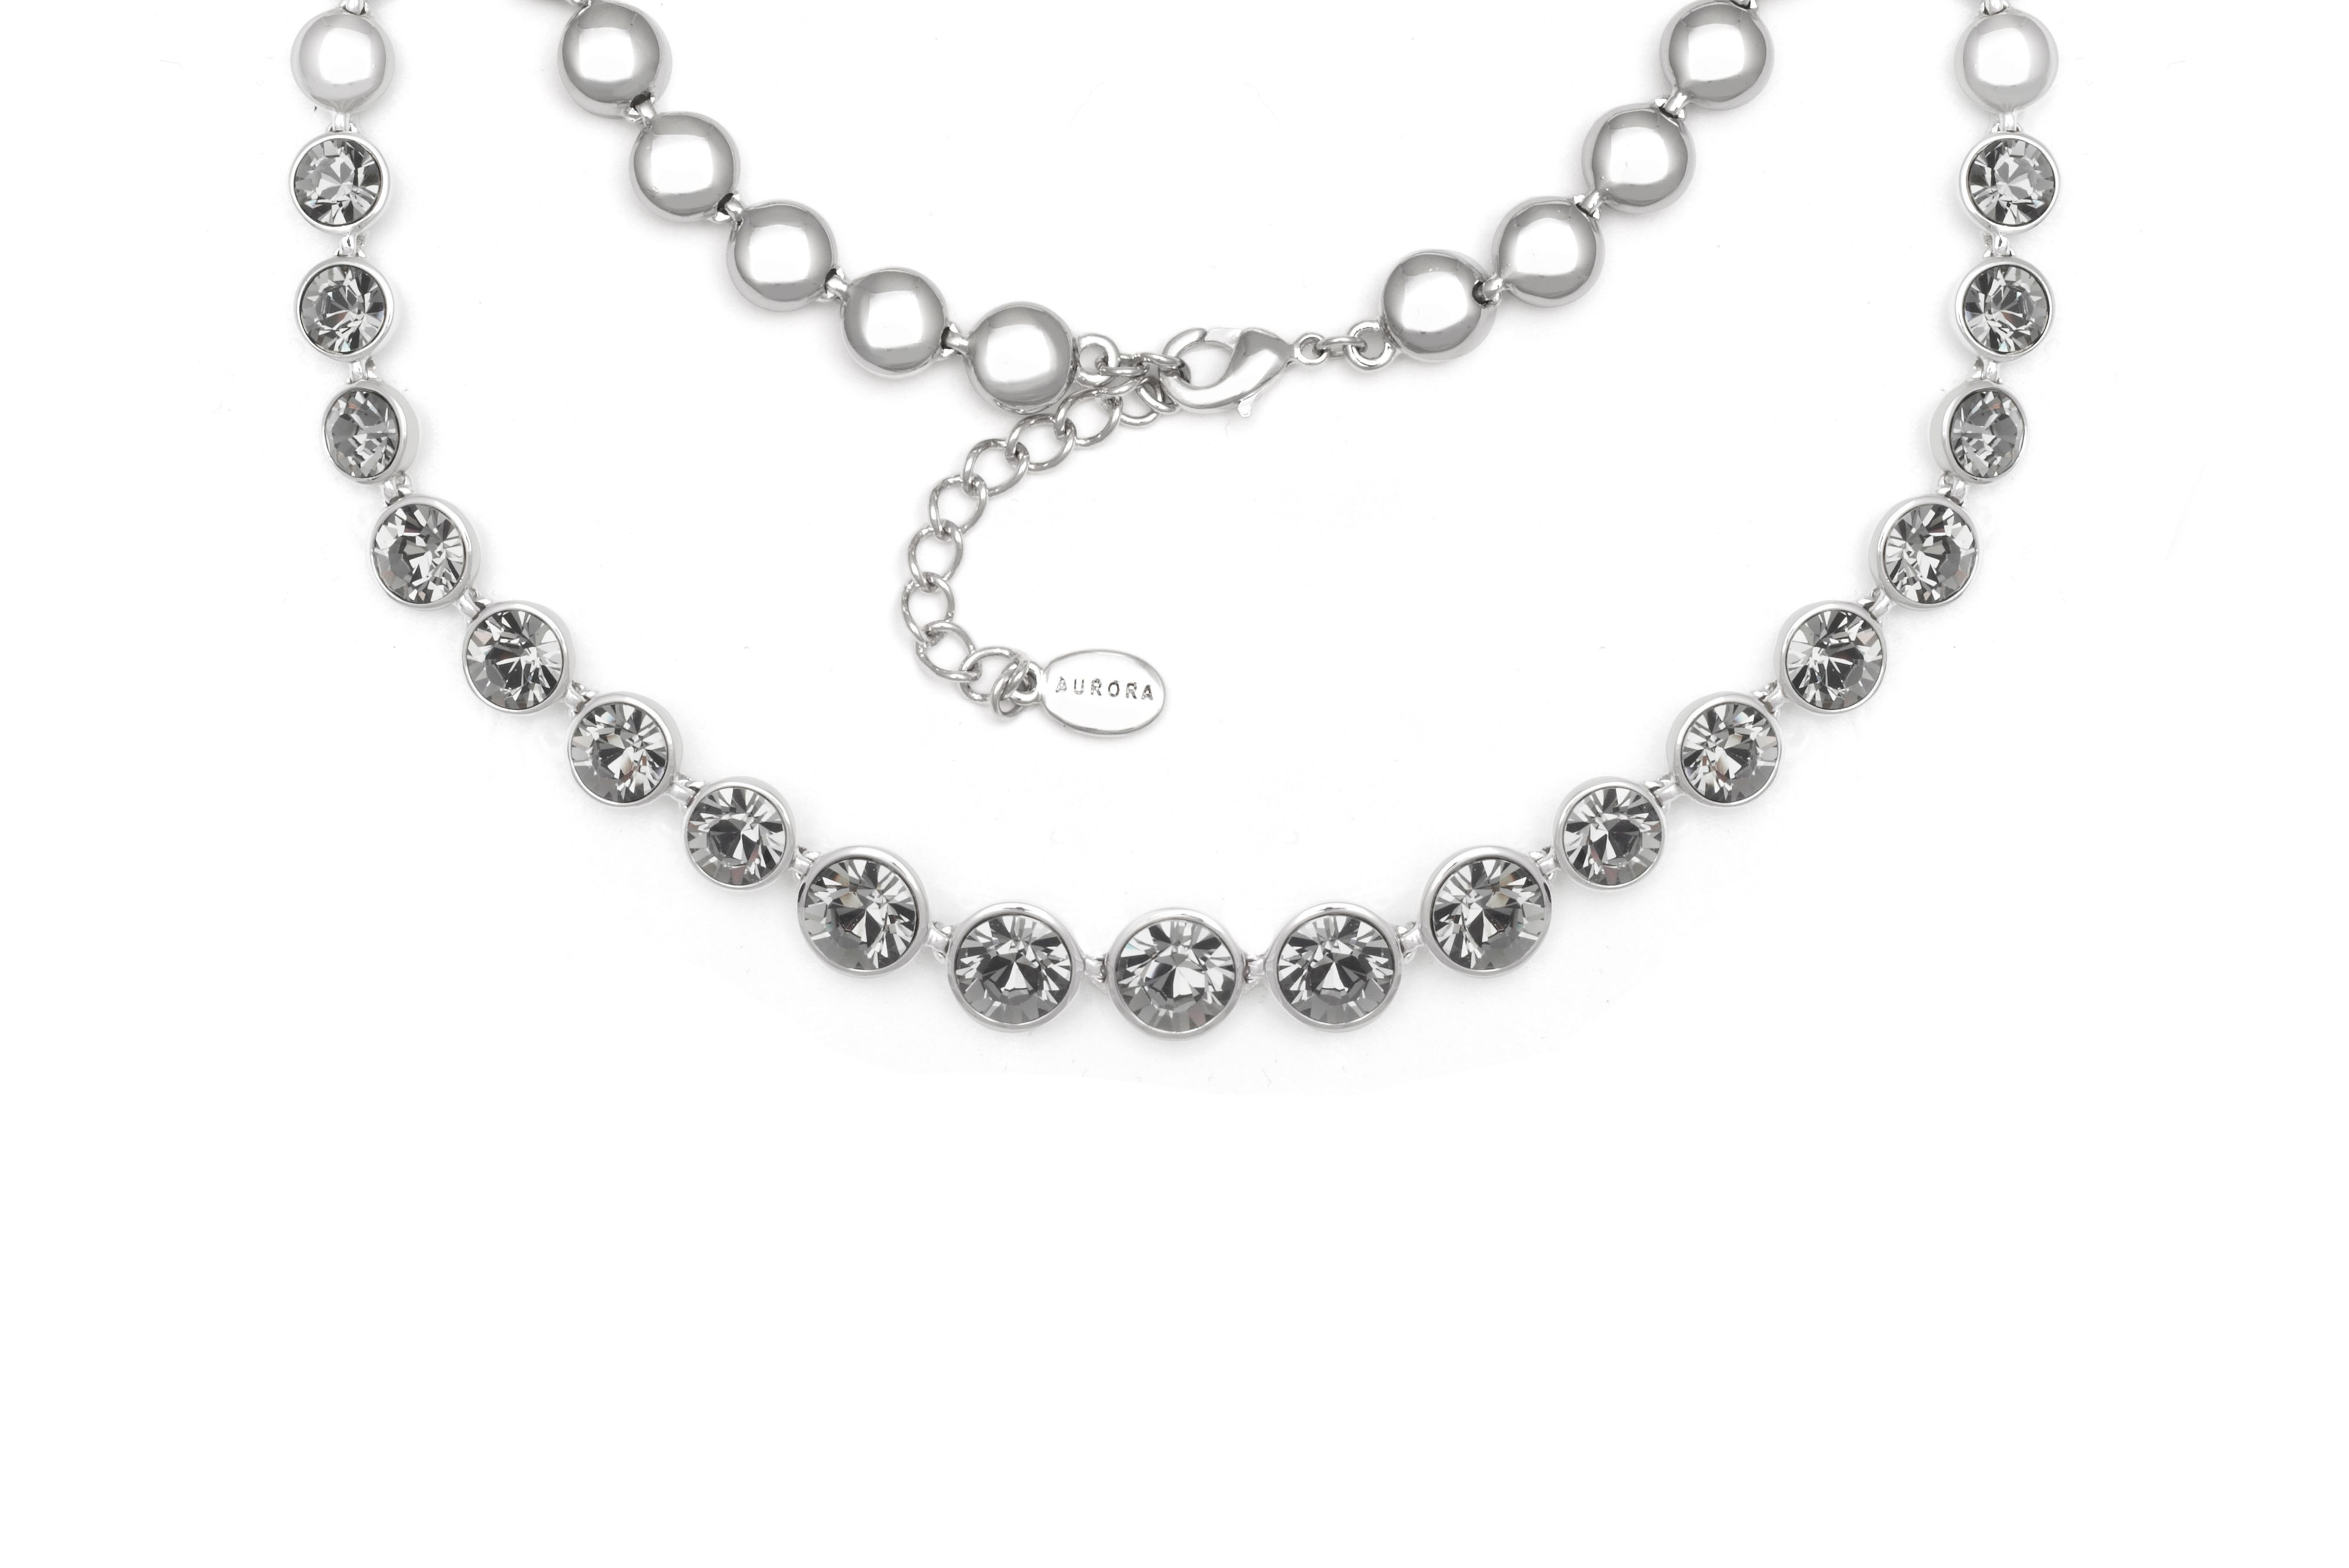 18ct White Gold Plated Necklace